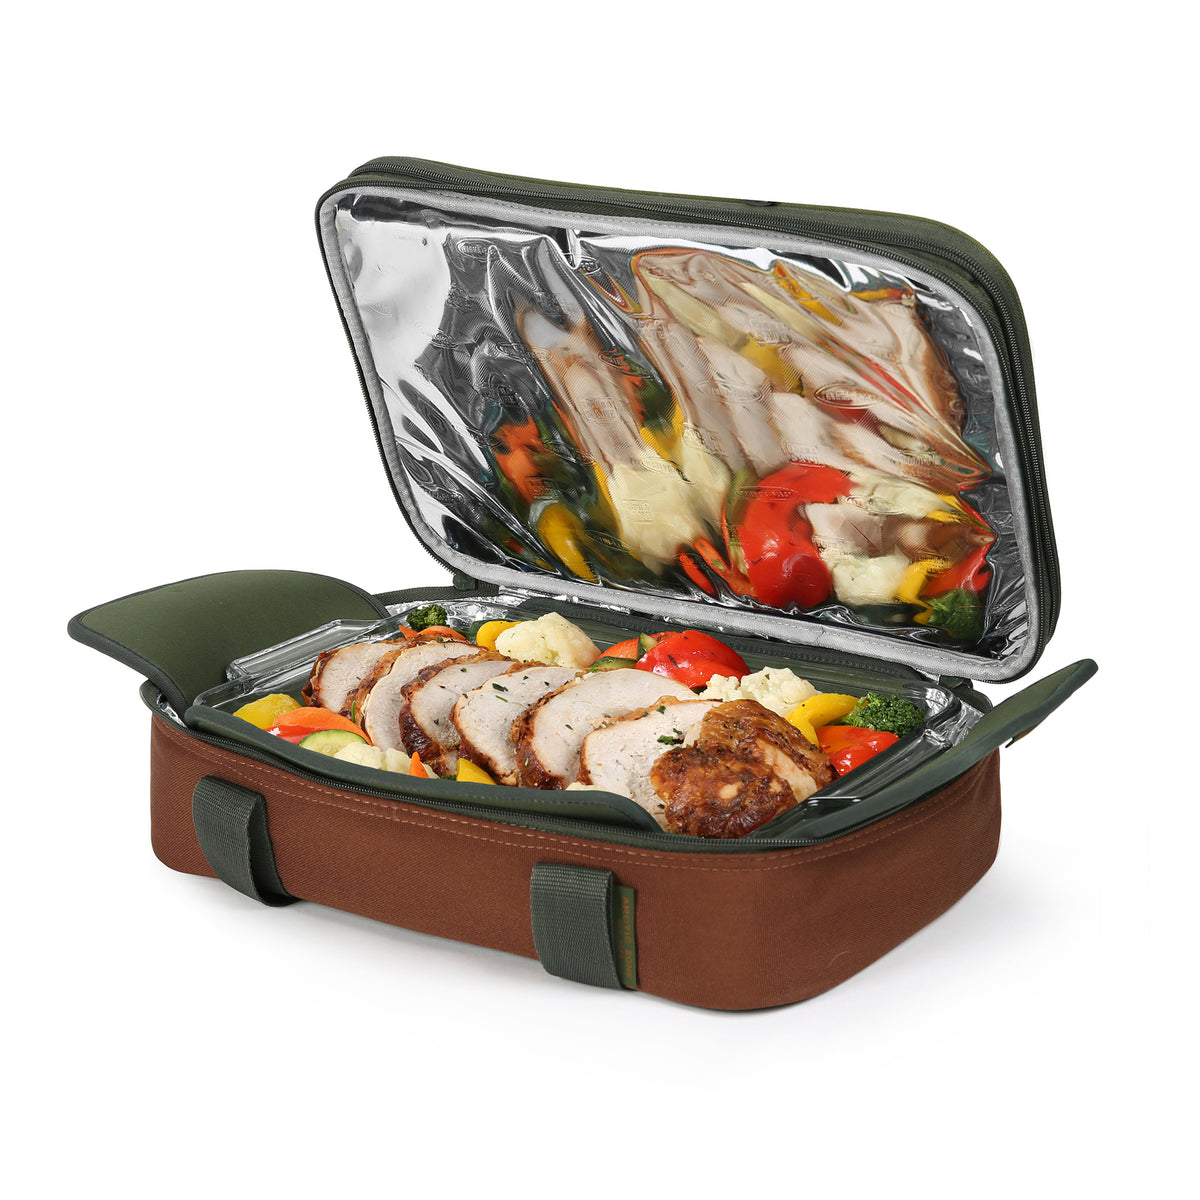 Arctic Zone® Food Pro Expandable Thermal Carrier - Green - Bottom propped